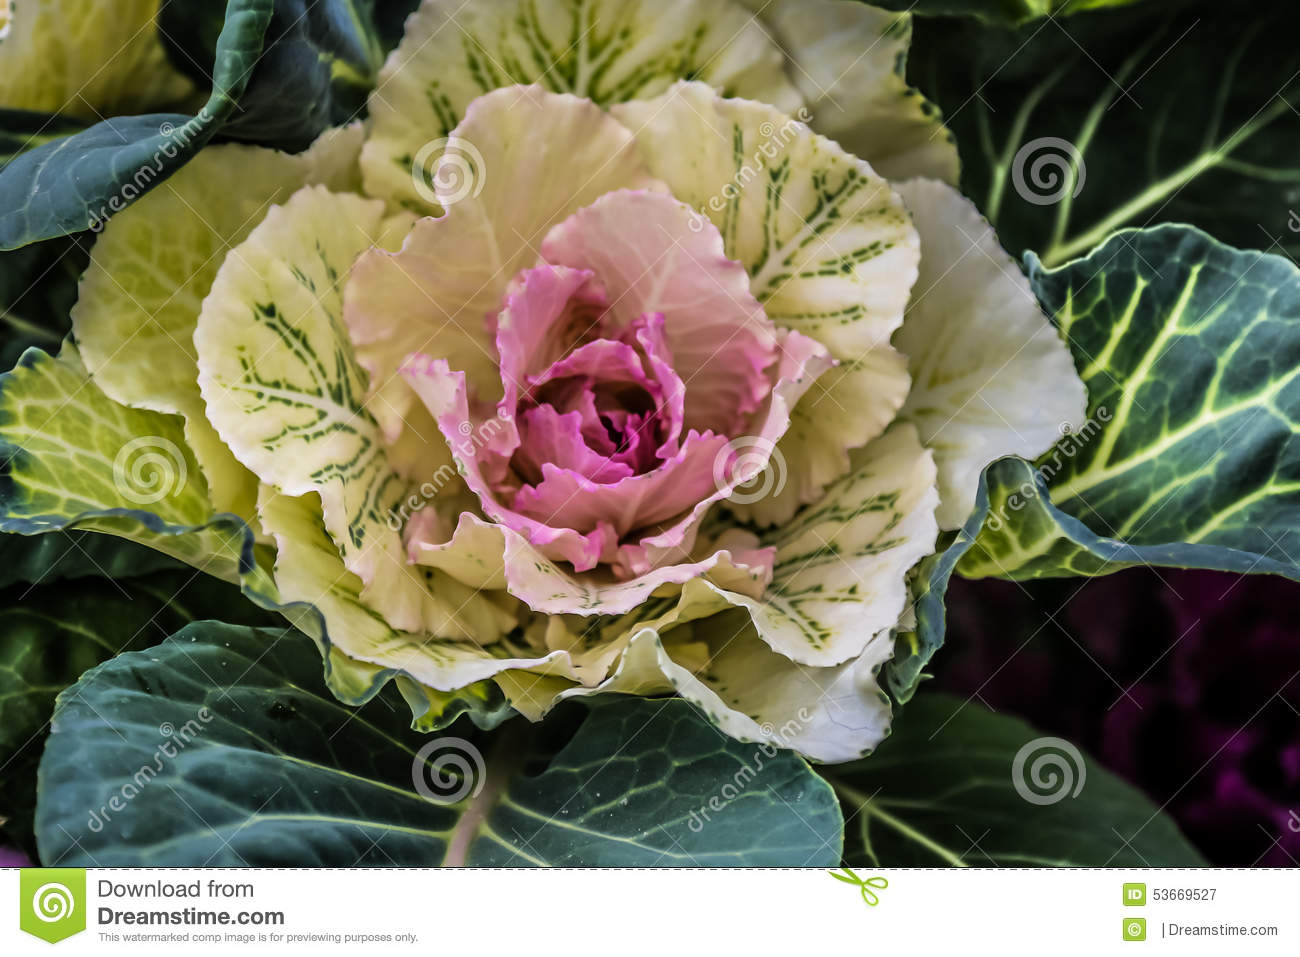 White Cabbage Flower Stock Image Image Of Center Photograph 53669527